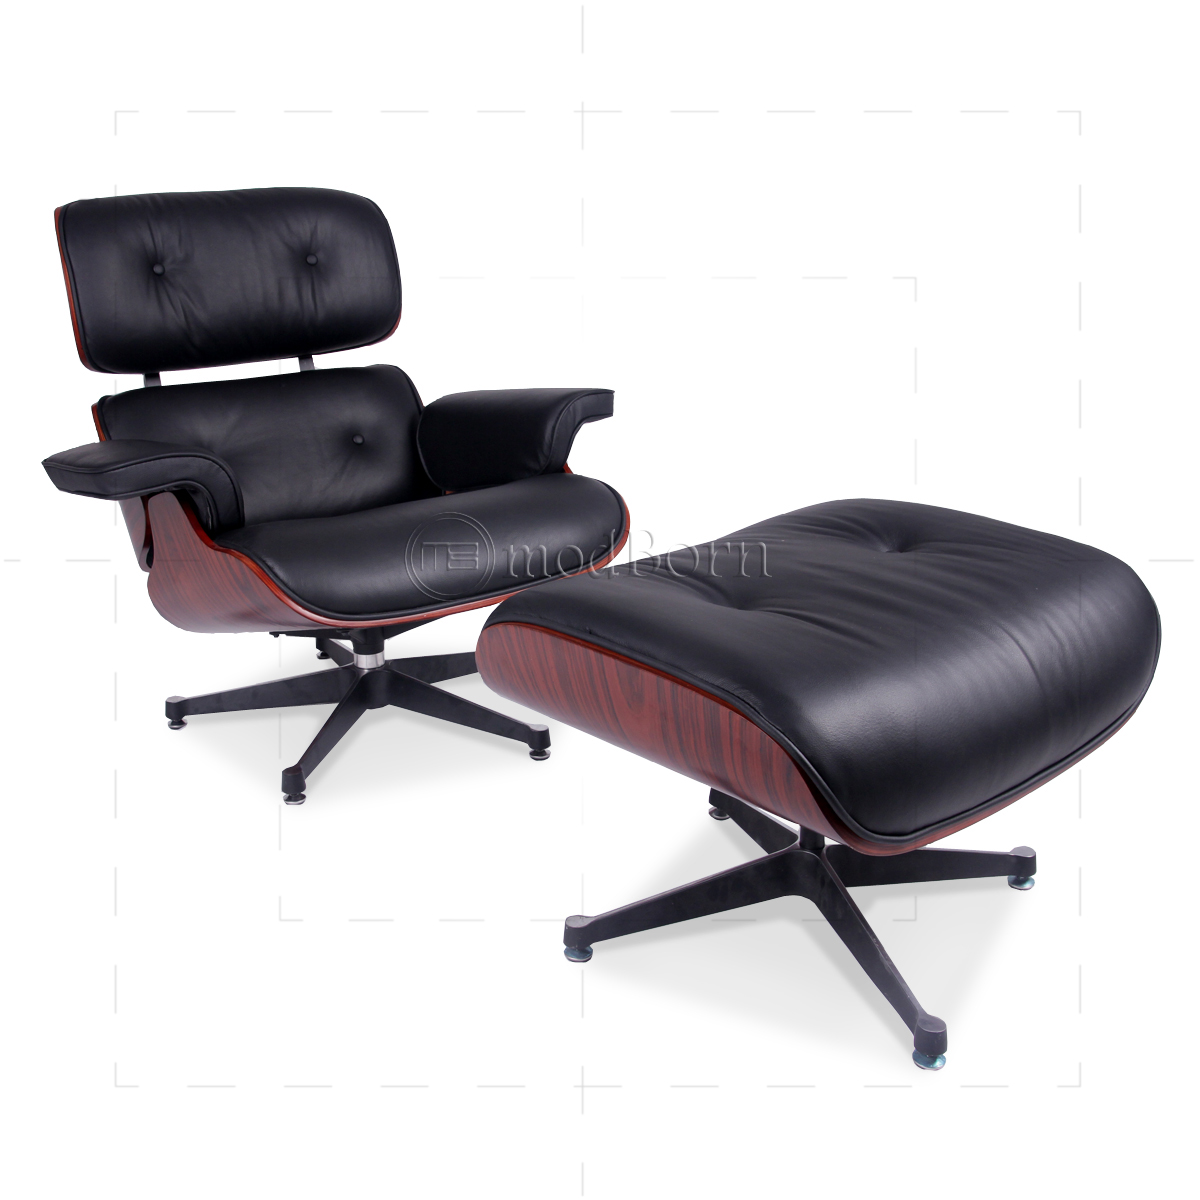 Eames style lounge chair and ottoman black leather for Eames chair fake